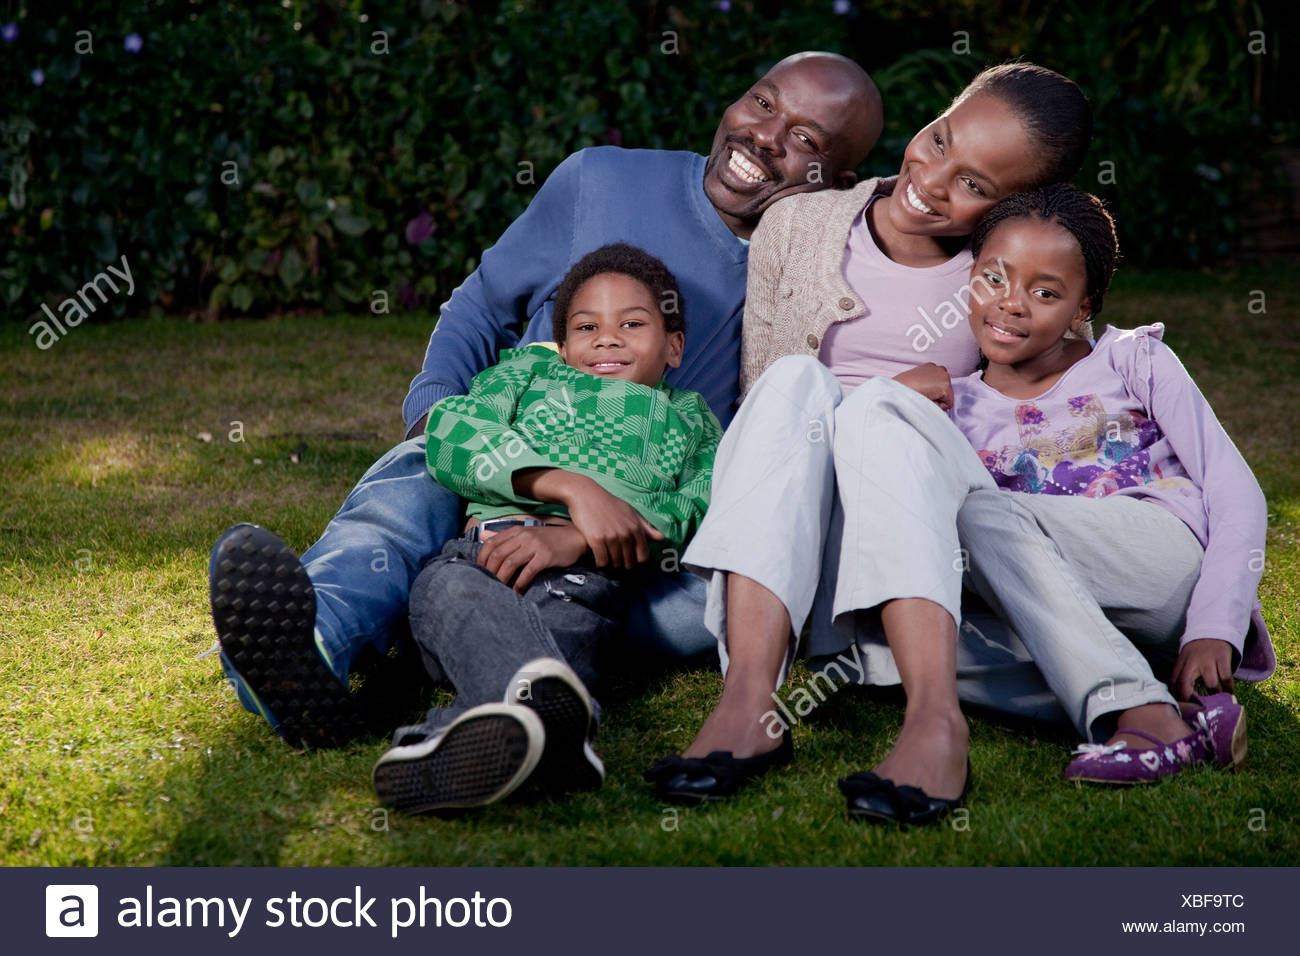 A family sitting together outside, Illovo Family, Johannesburg, South Africa. - Stock Image